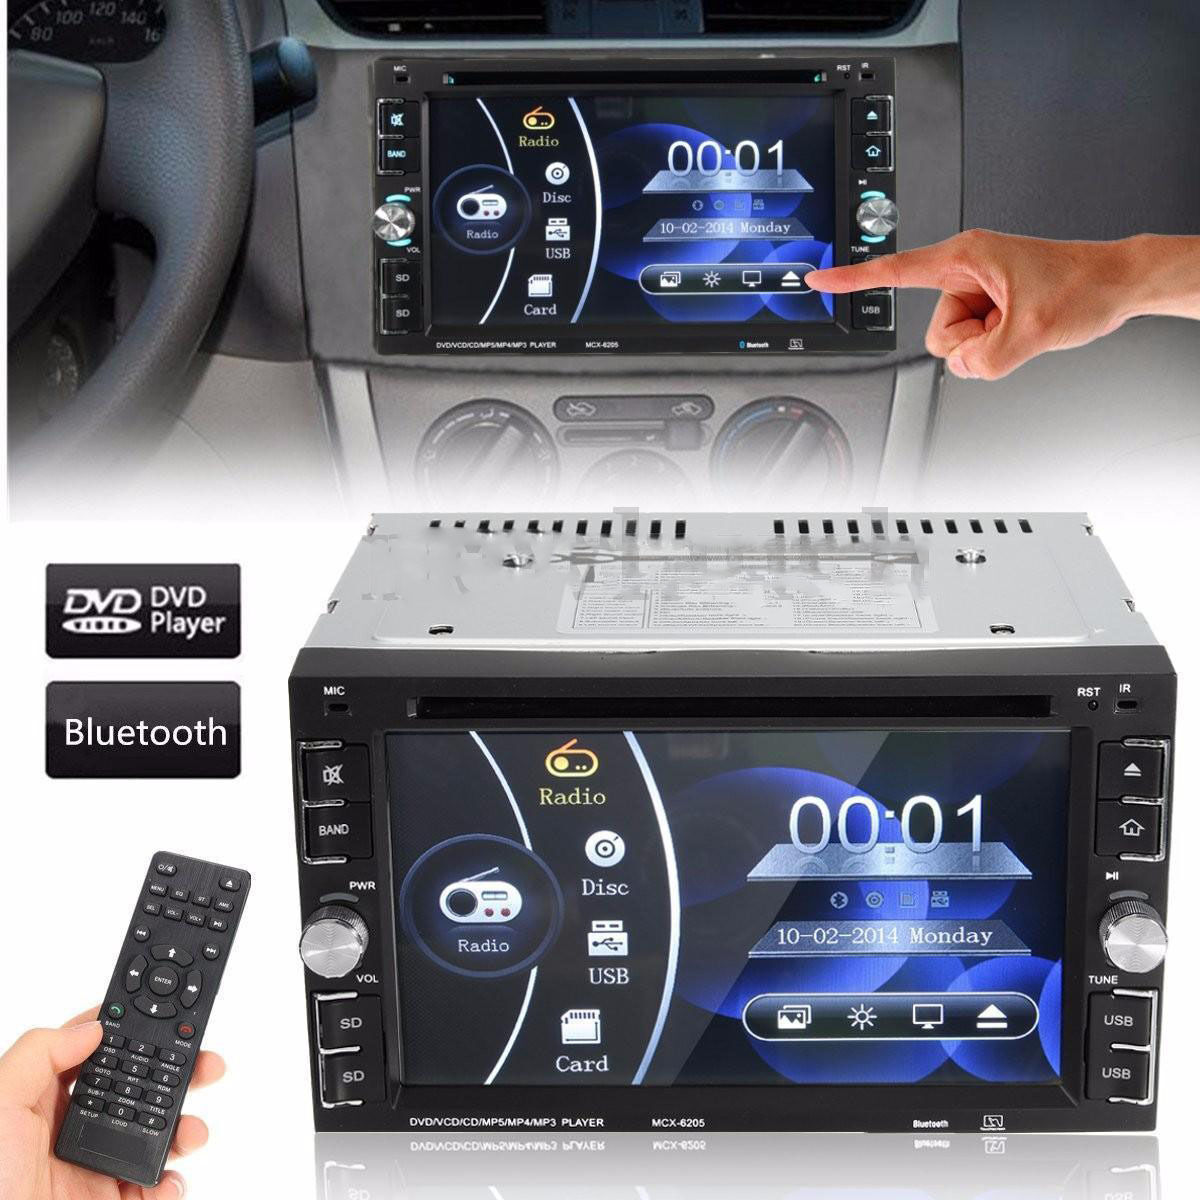 $68.47 - Bluetooth Car Stereo DVD CD Player 6.2